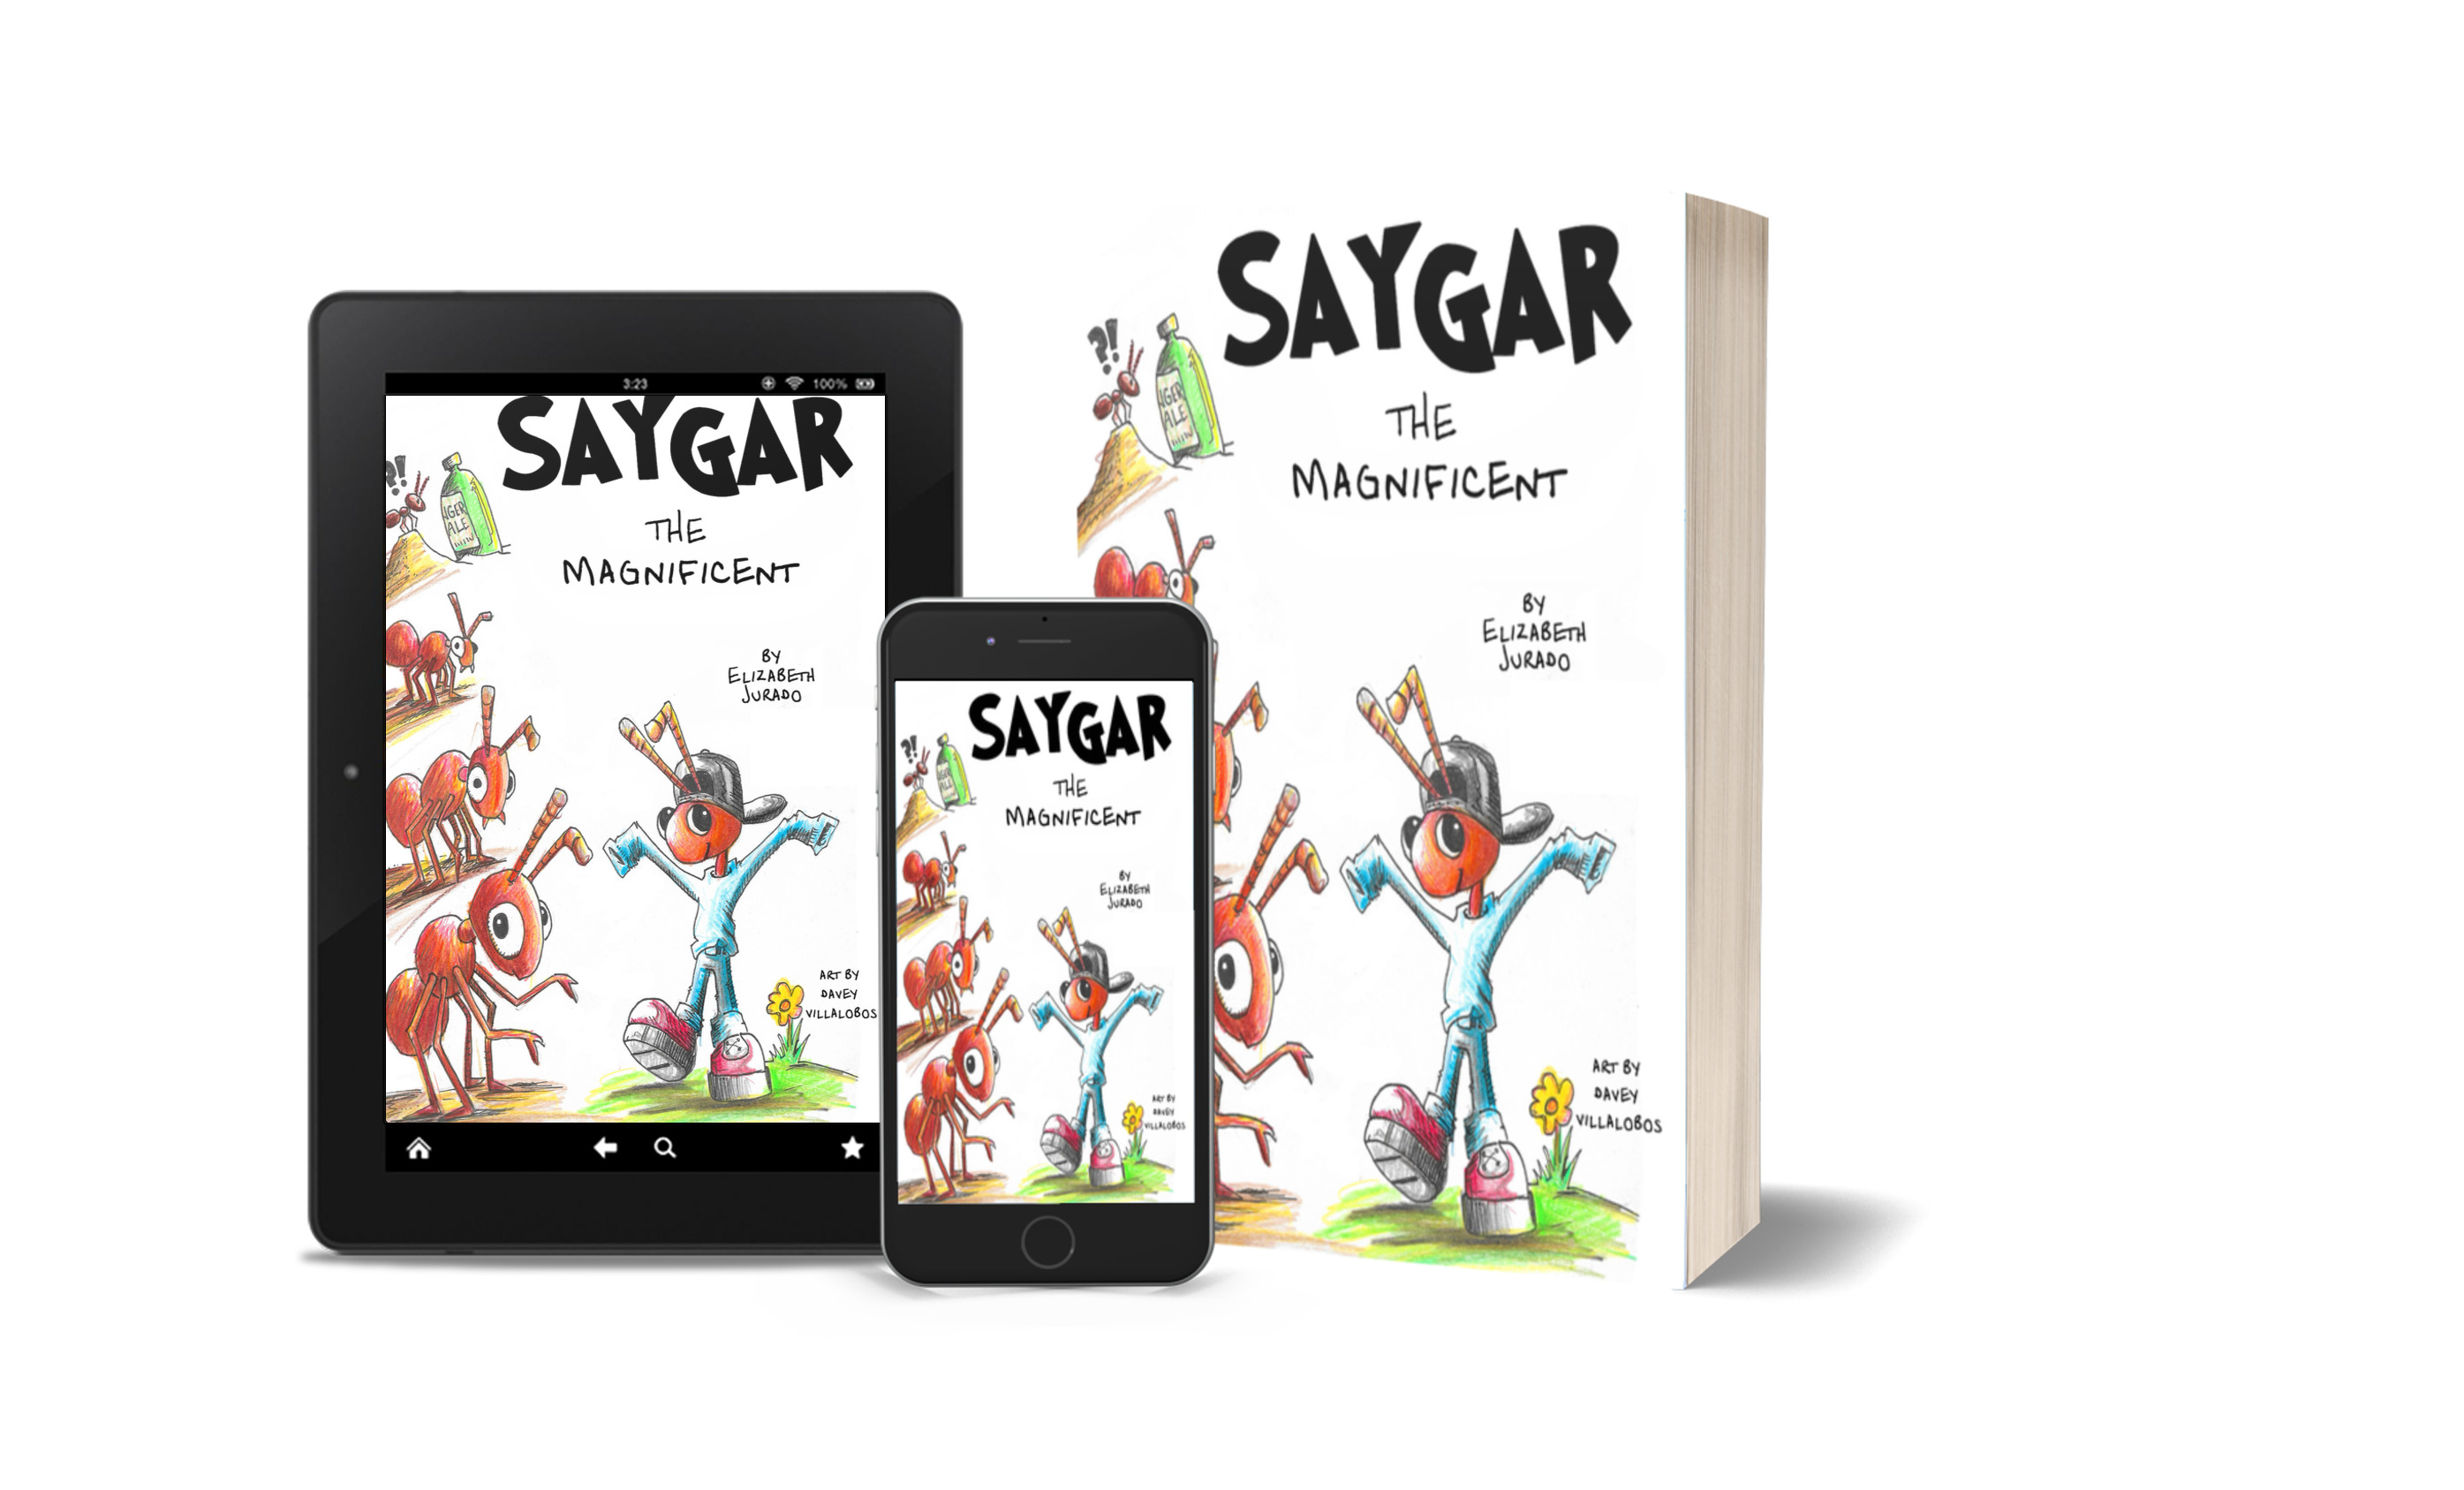 Book Review: Saygar The Magnificent